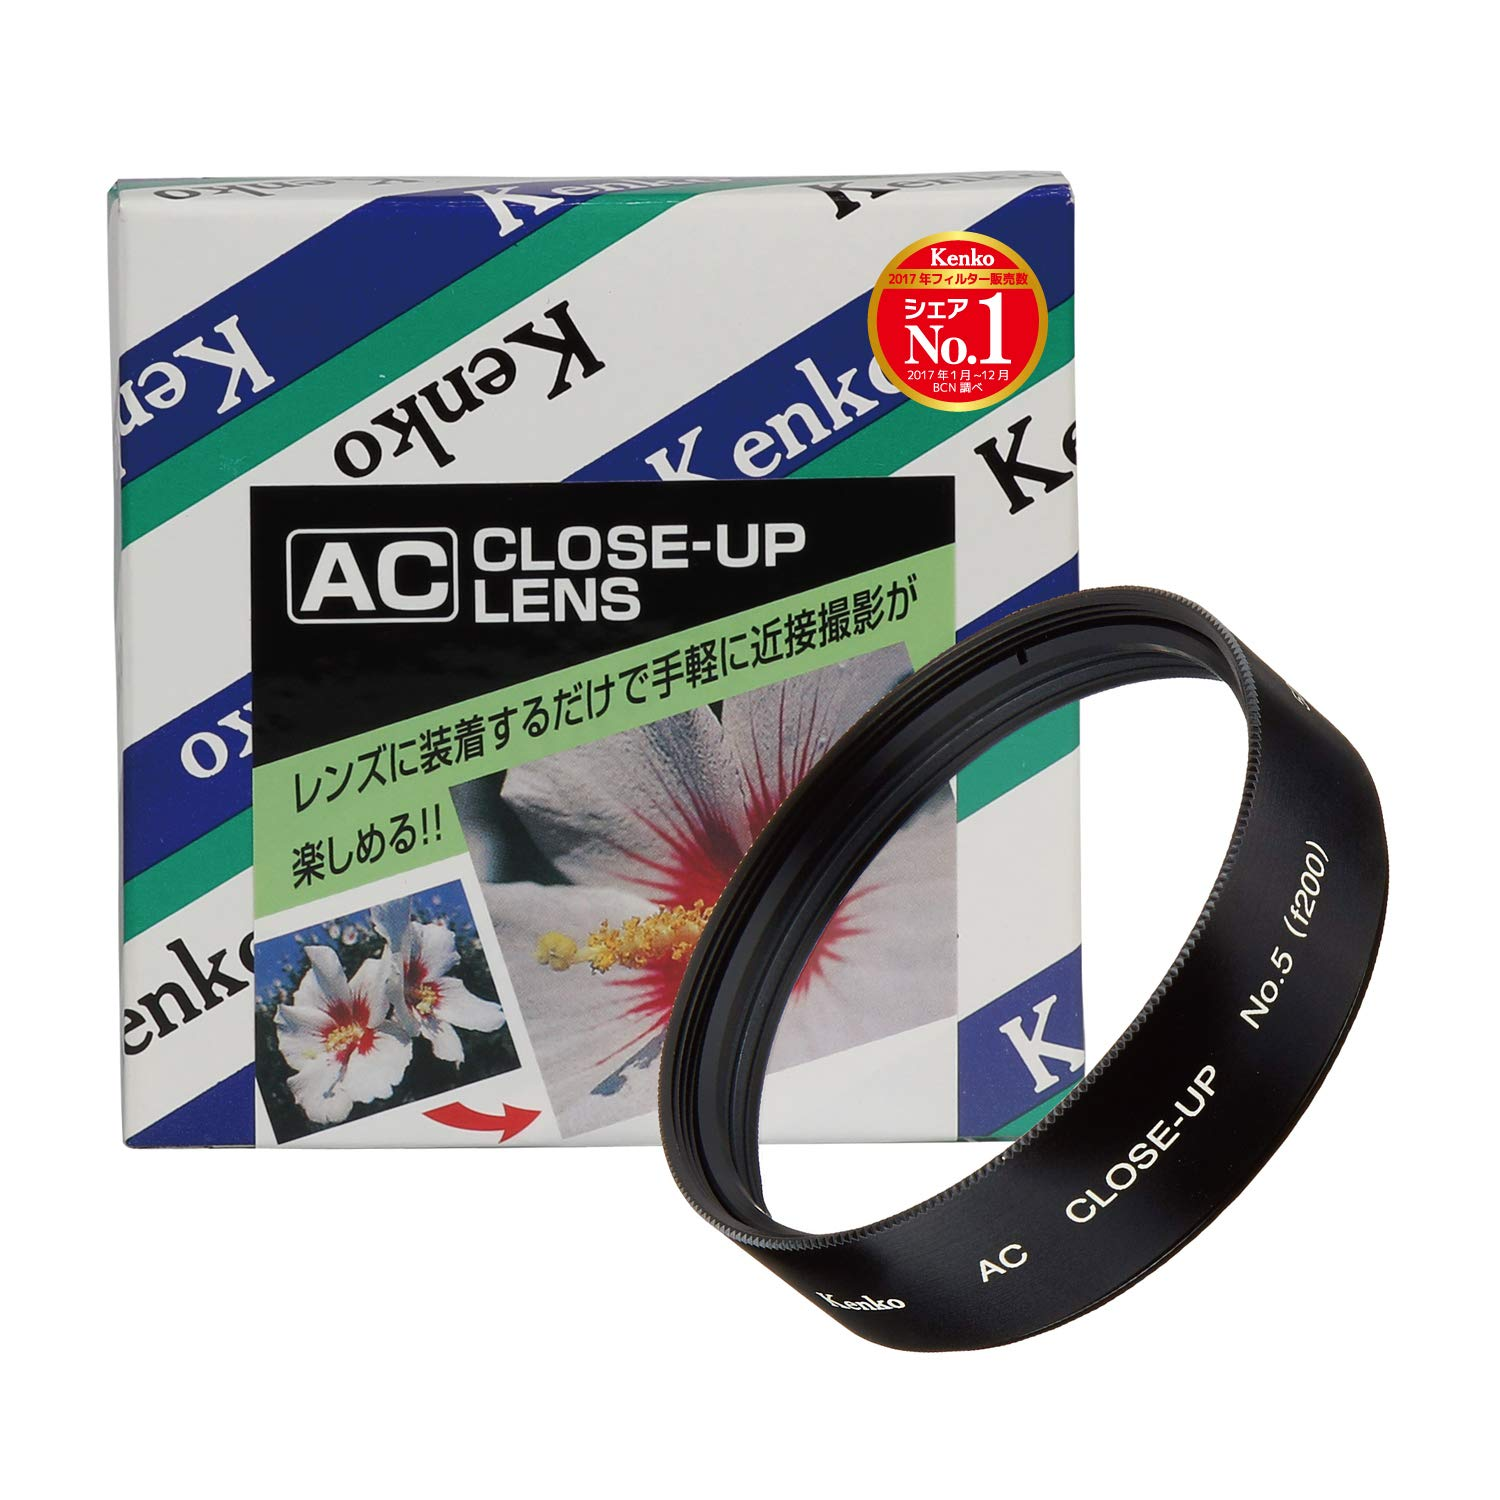 Kenko Close-Up Lens 58mm AC No.5 Achromatic-Lens by Kenko